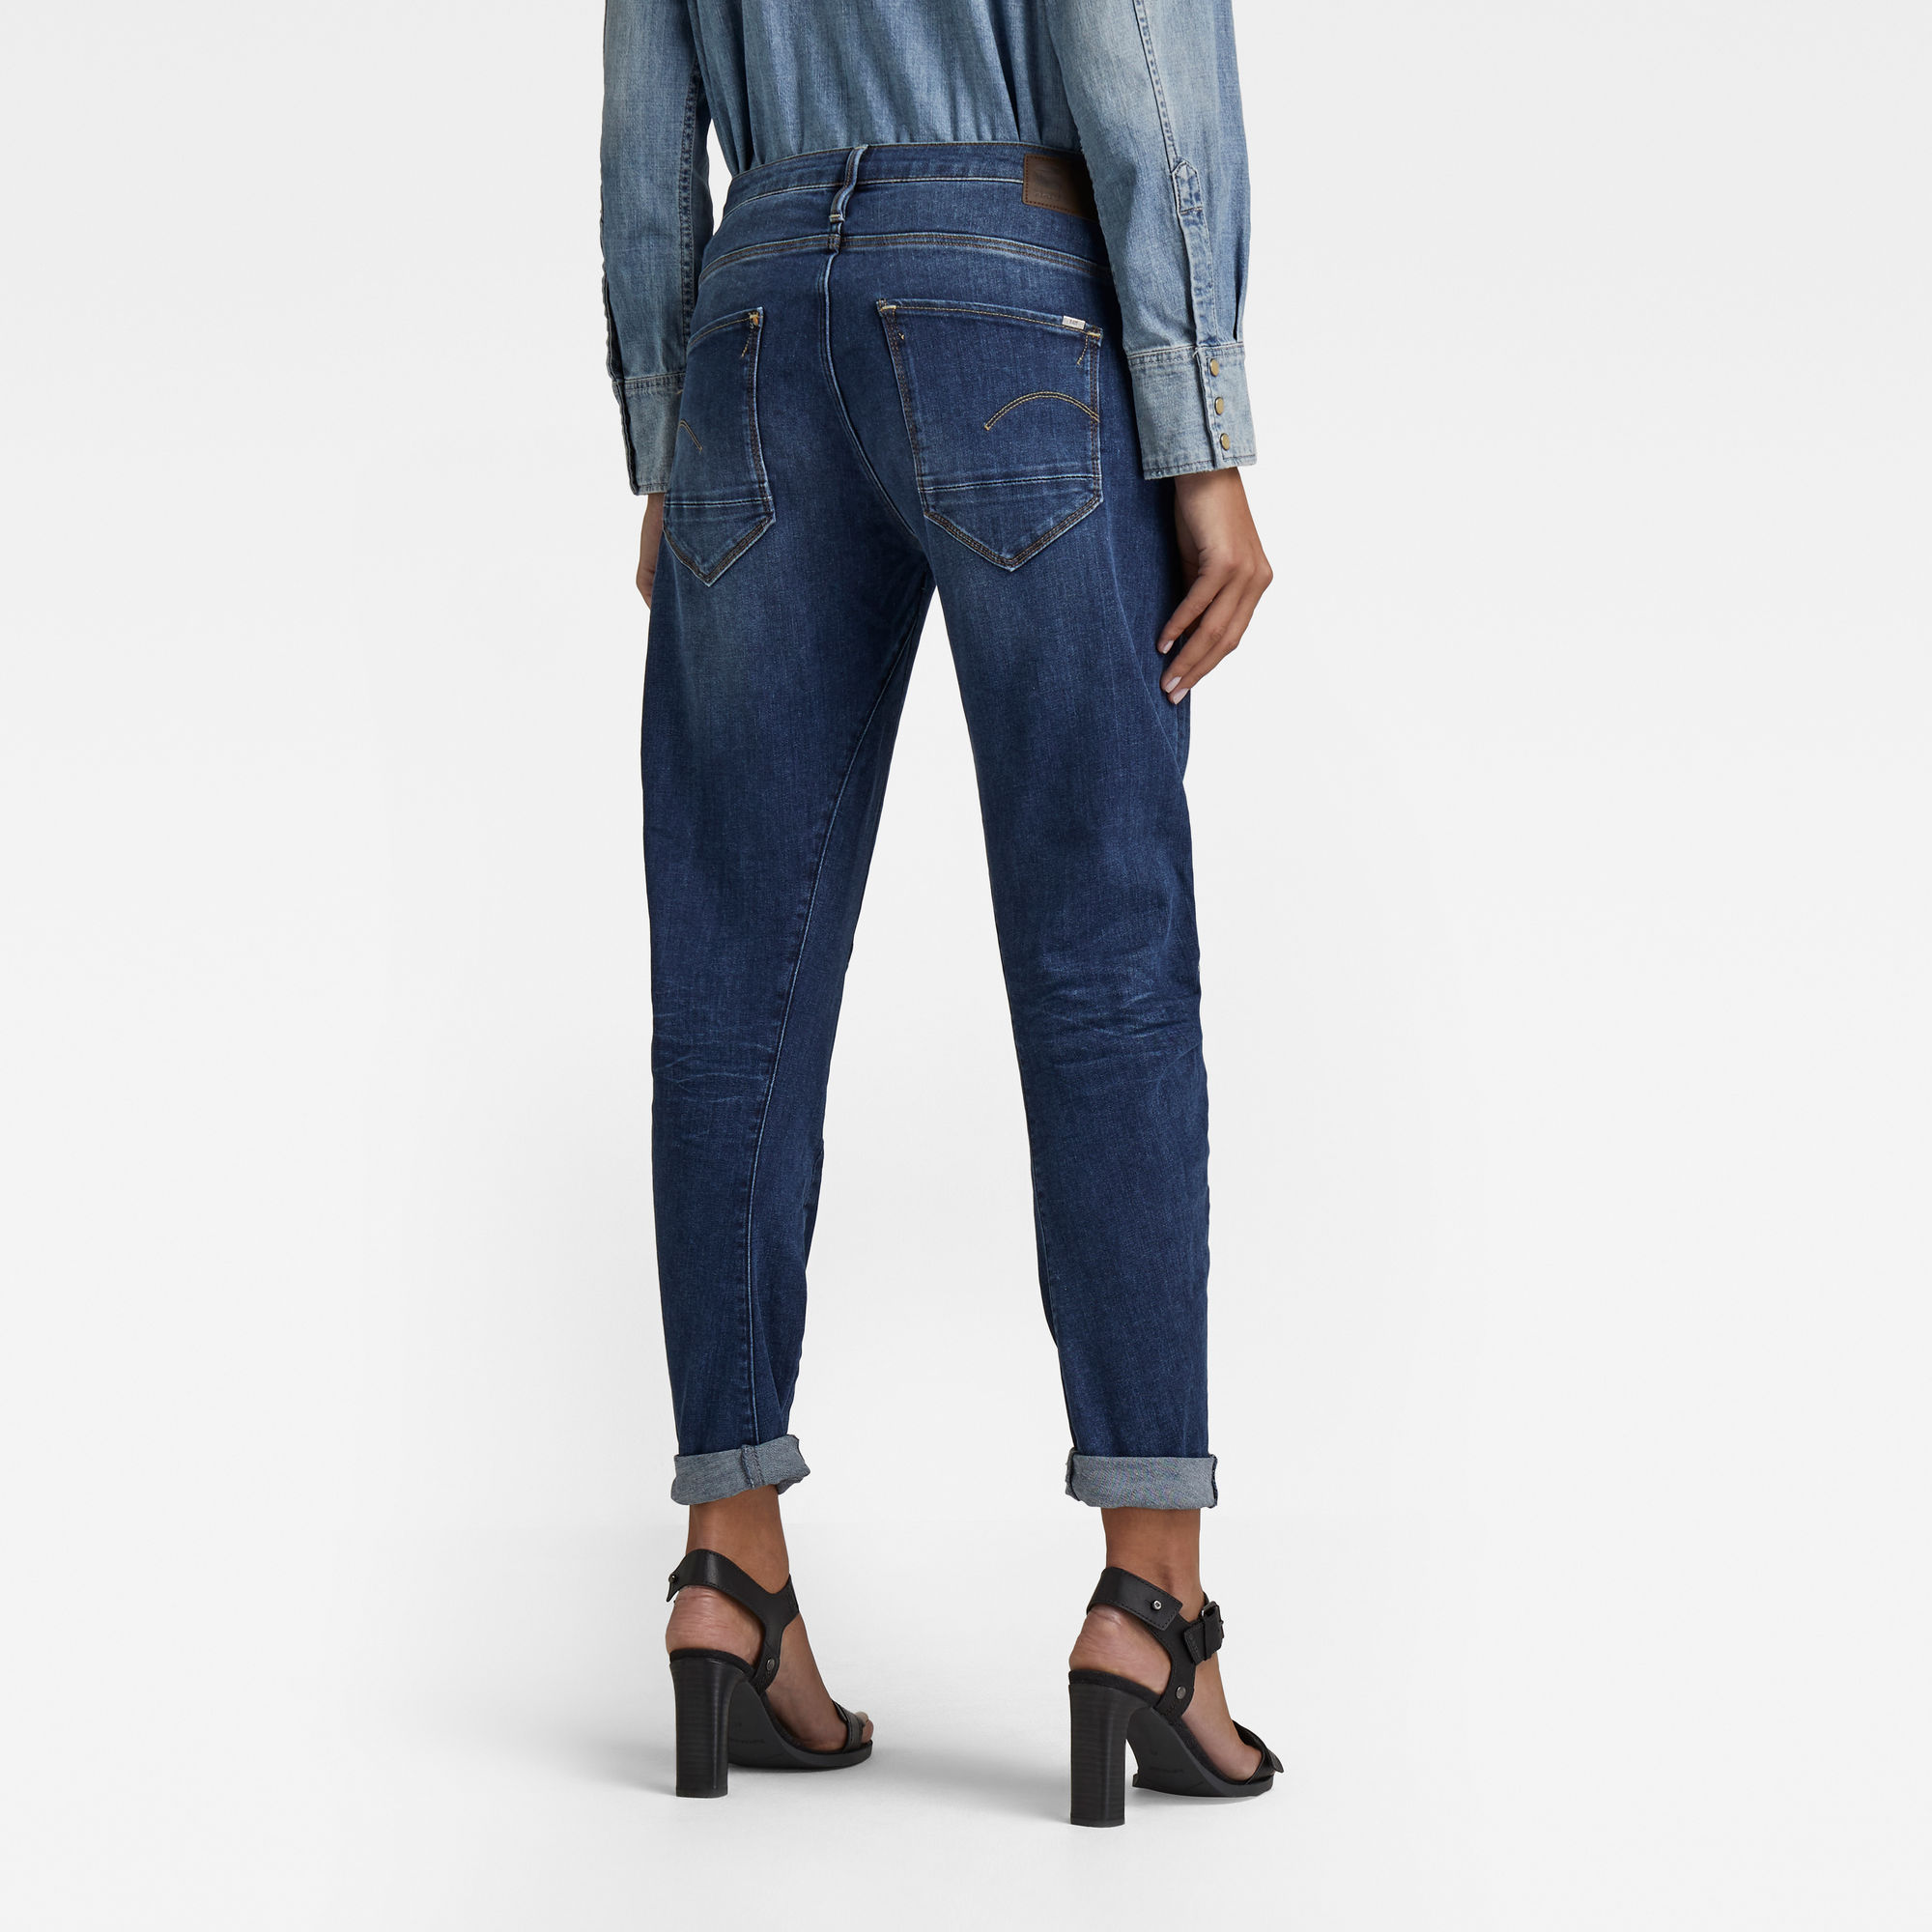 G-Star RAW Arc 3D Low Waist Boyfriend Jeans